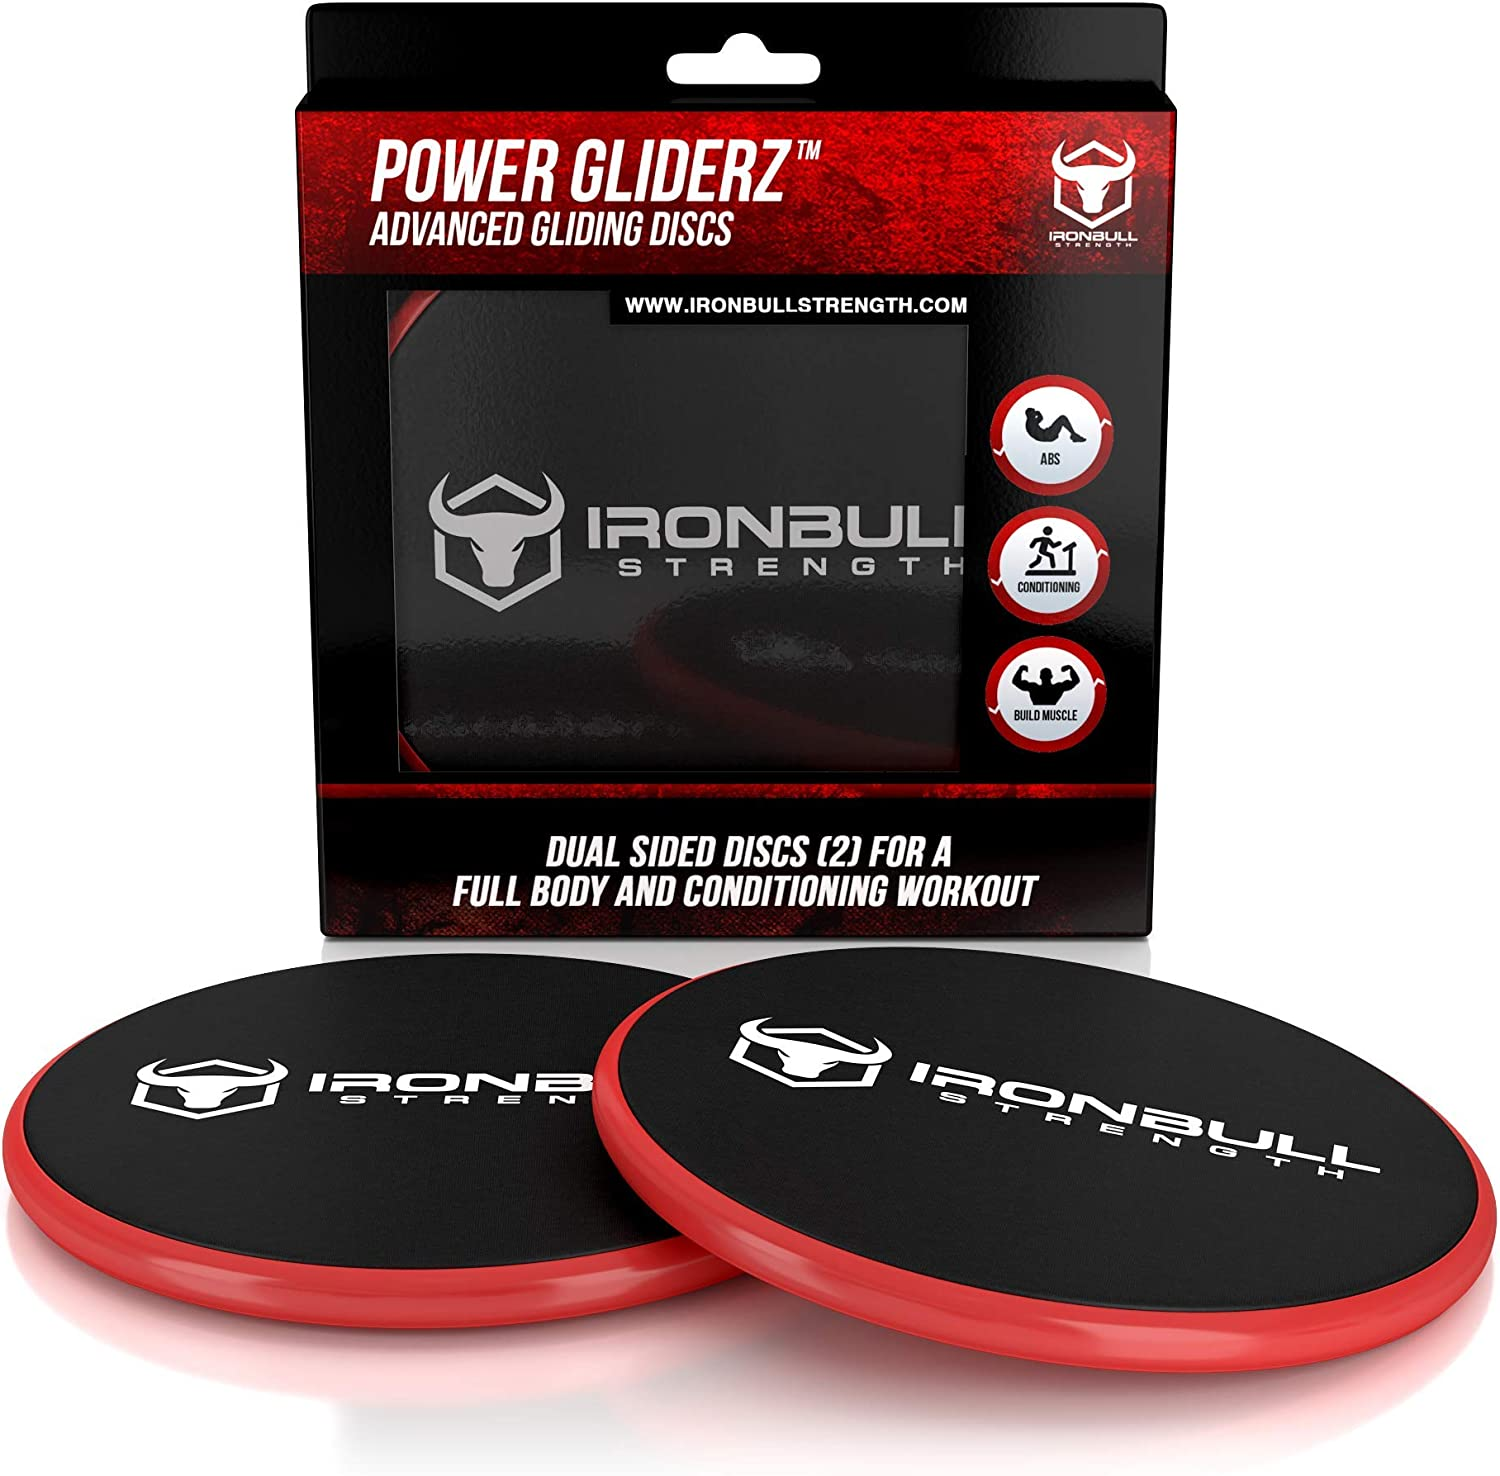 Dual Sided Exercise Discs for Smooth Sliding On Carpet and Hardwood Floors Abs at Home or Gym or Travel Gliding Discs Core Sliders Fitness Equipment Sliding Discs Workout Legs Arms Back